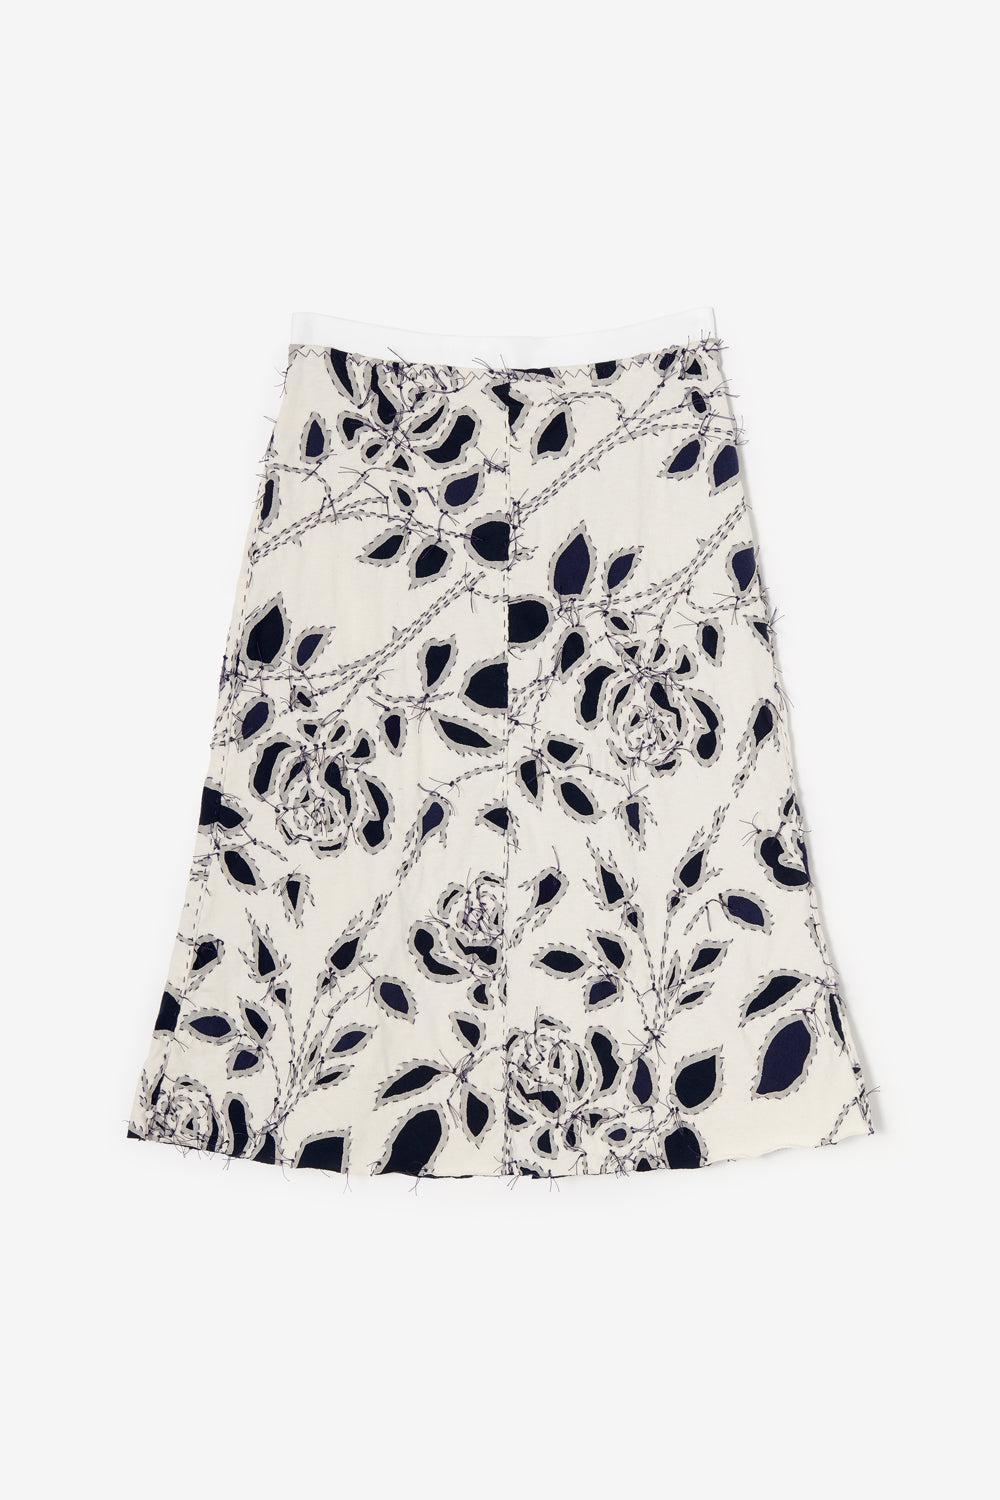 Alabama Chanin Rose Helton Skirt in Natural and Navy Upcycled Cotton Jersey